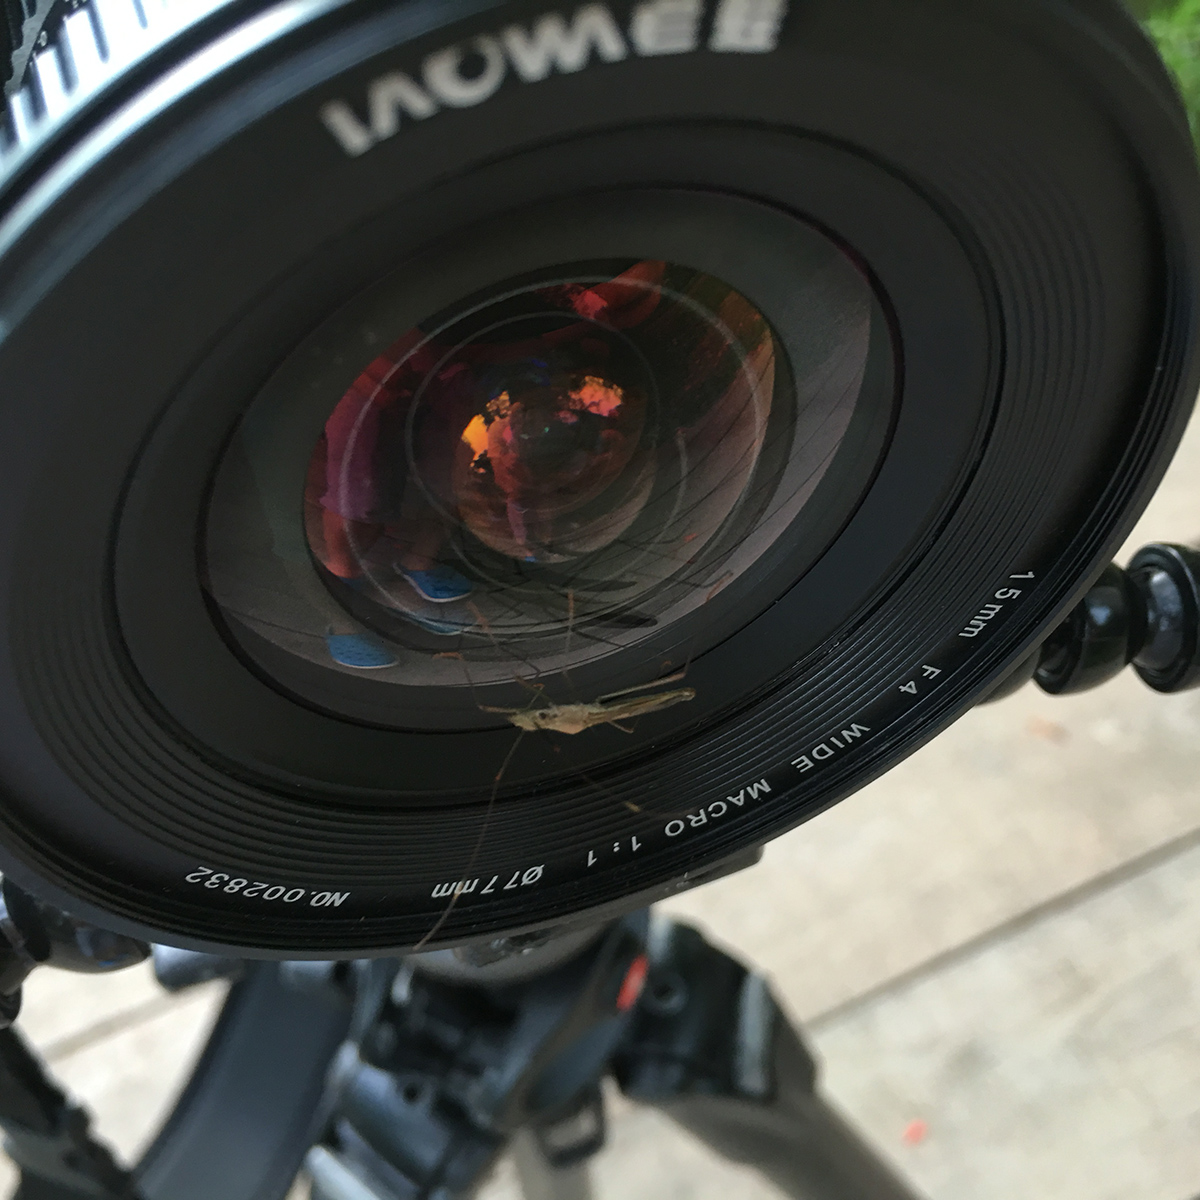 Review: Laowa 15mm f/4